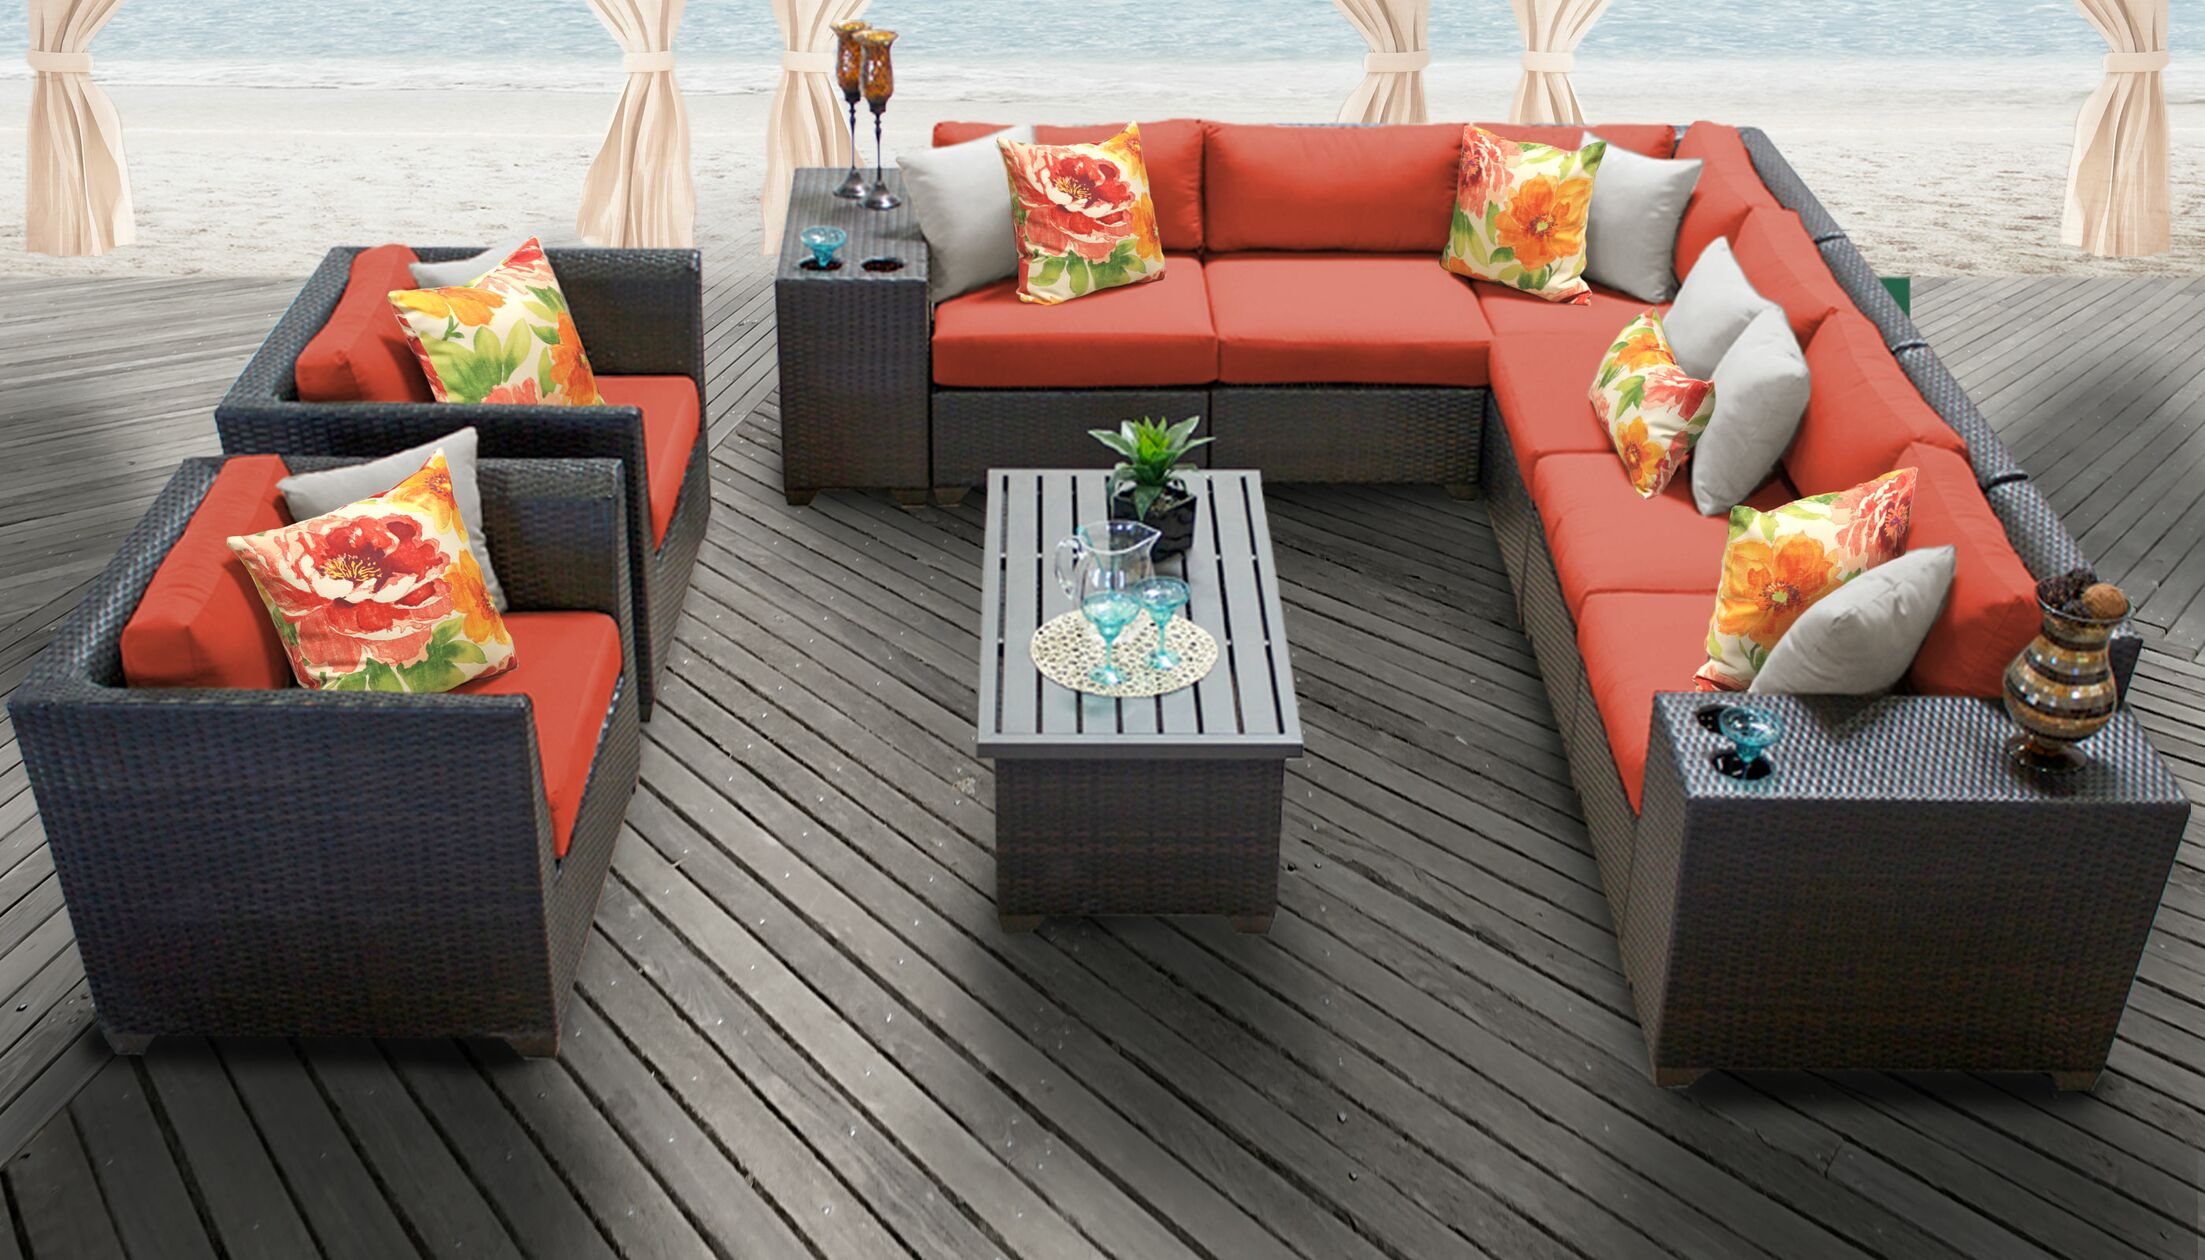 Barbados 11 Piece Rattan Sectional Set with Cushions Color: Tangerine